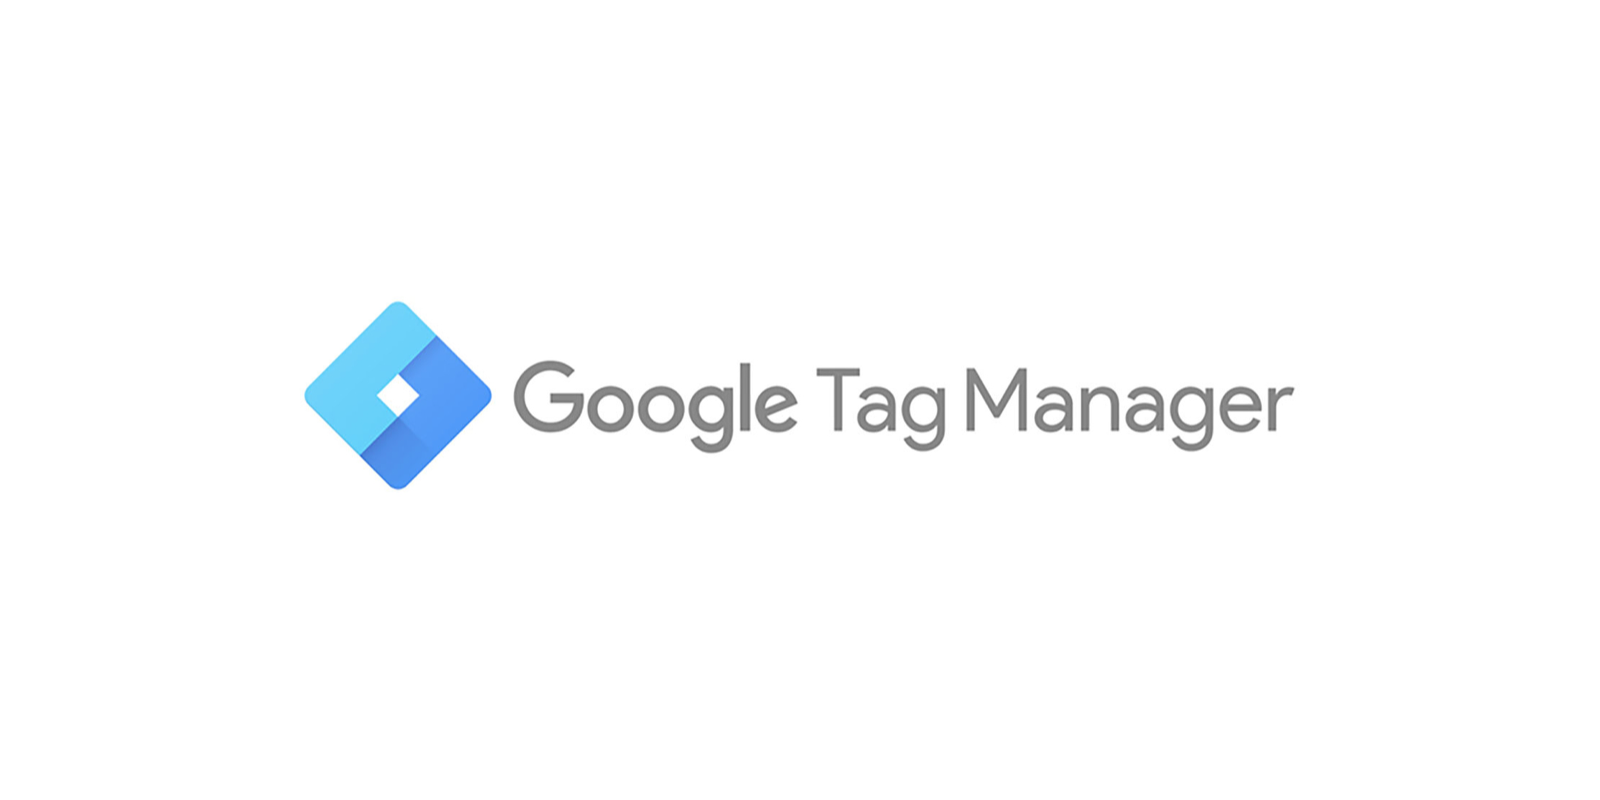 Google Tag Manager - The Marketers Guide To Web Tracking